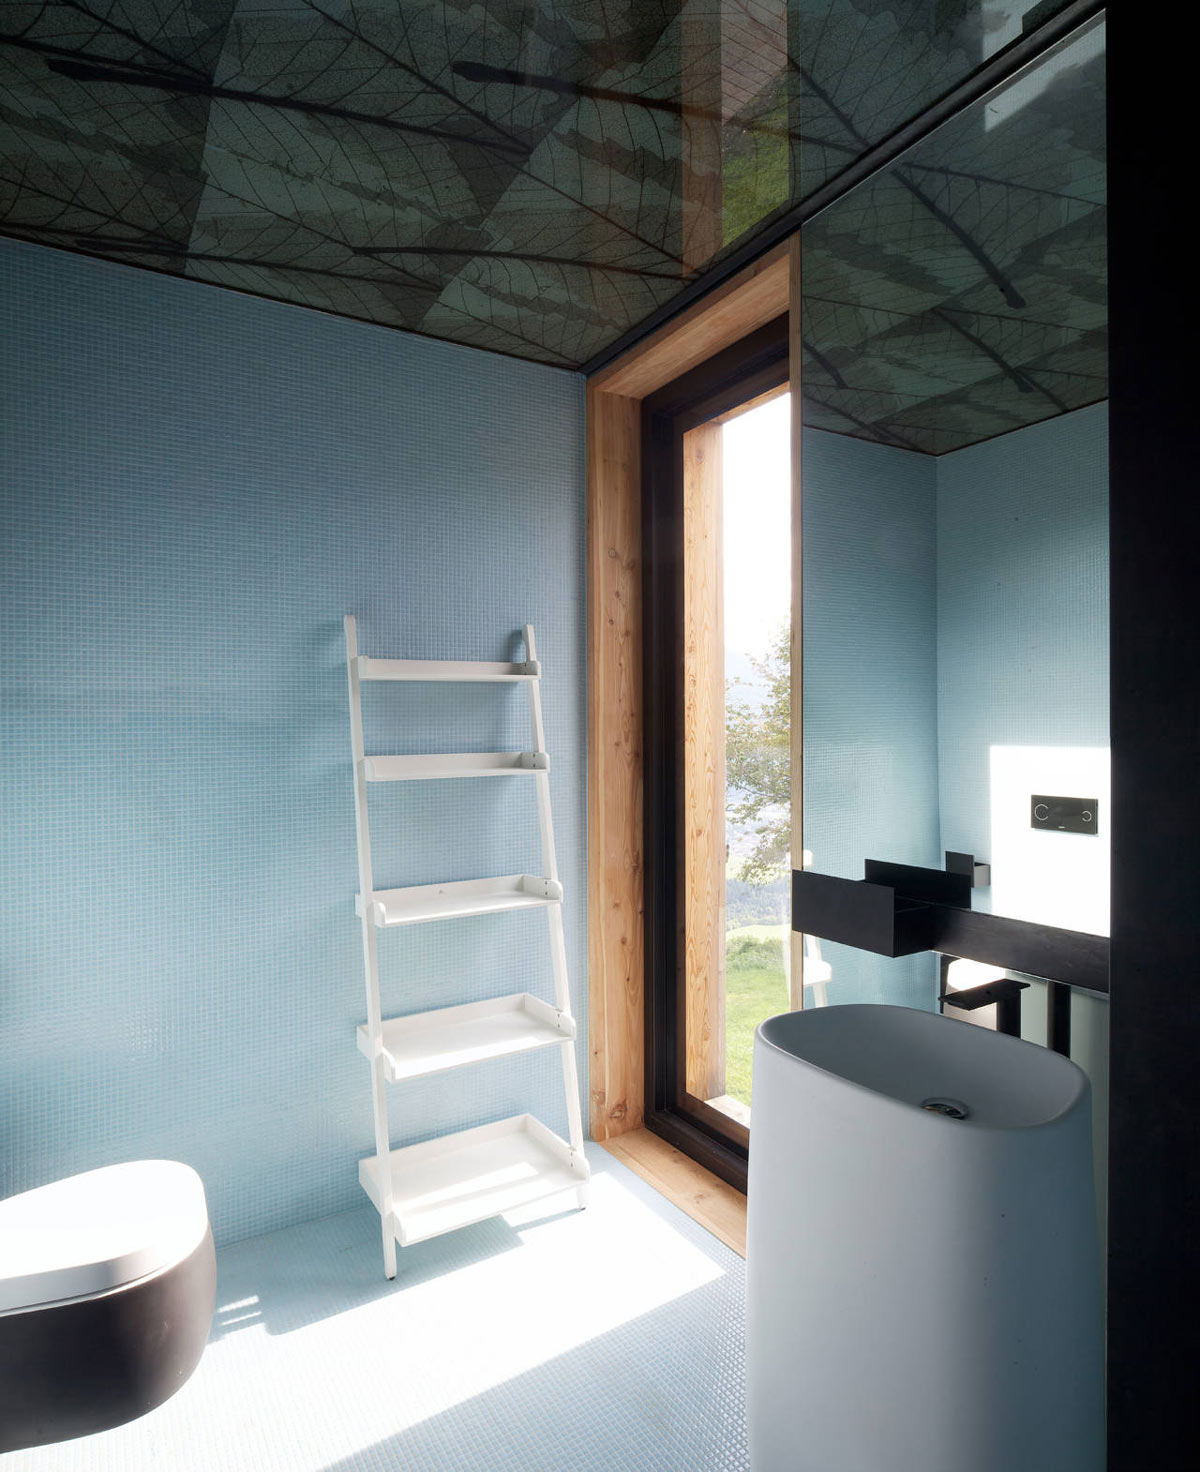 Bathroom, Modern Sink, Kurt Brunner Residence in Sterzing, Italy